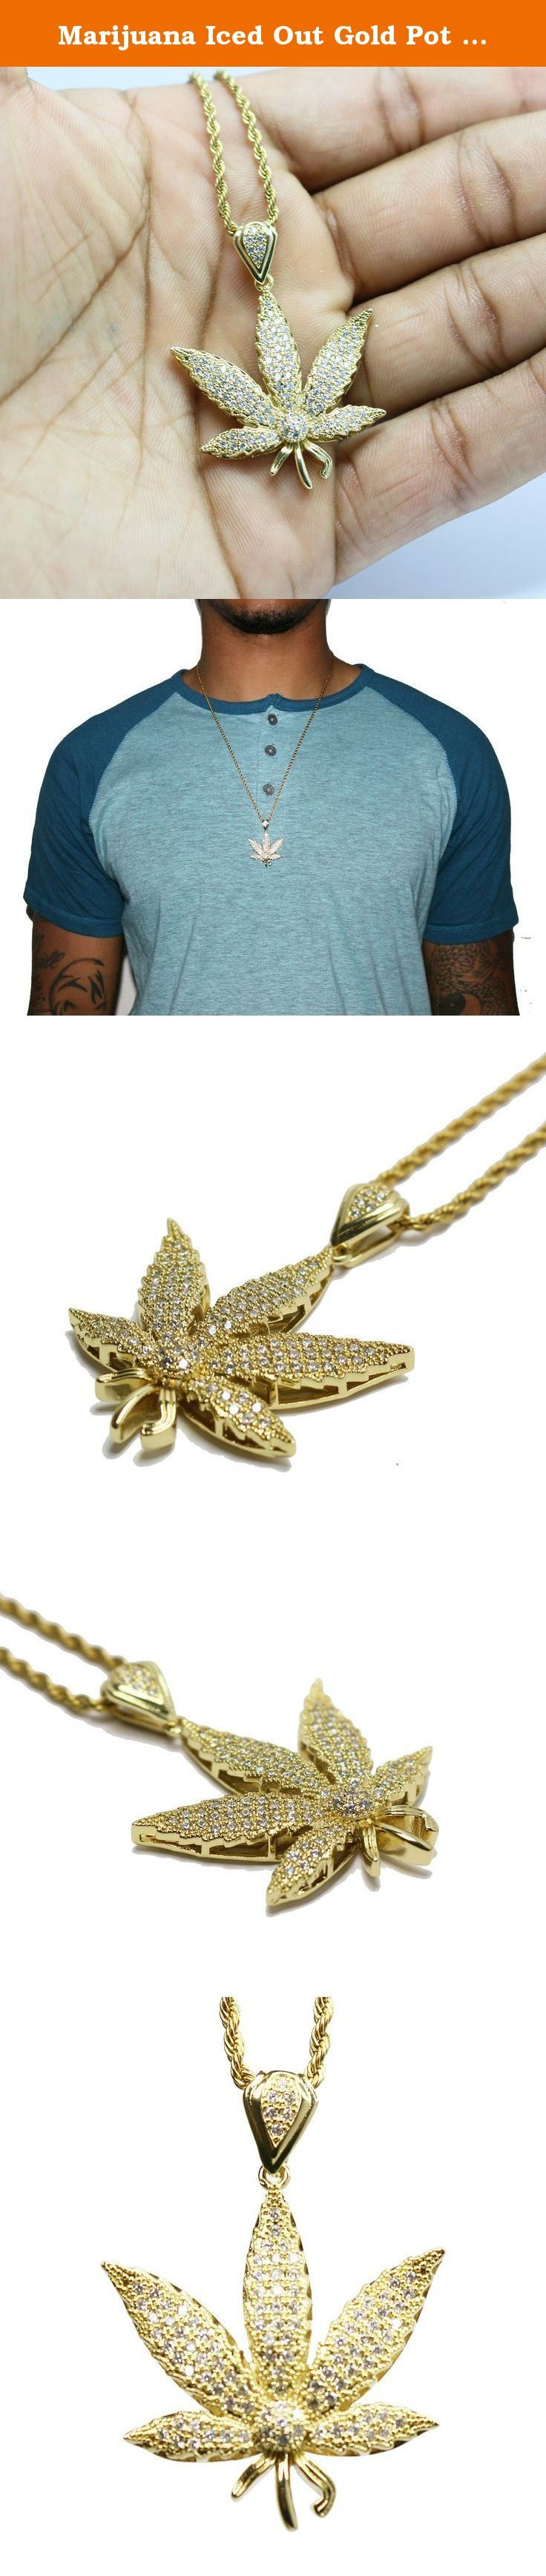 Marijuana Iced Out Gold Pot Weed Leaf Pendant 420 Charm 24 in Rope Chain Hip Hop Necklace. 14k Gold Plated Iced Out Cannabis Leaf Pendant And 24 Inch Rope Chain Pendant is 14k gold plating over Brass. White cz stones. Pendant size is 35mm Comes with a 2mm 24 inch 14k gold plated Stainless steel rope chain.